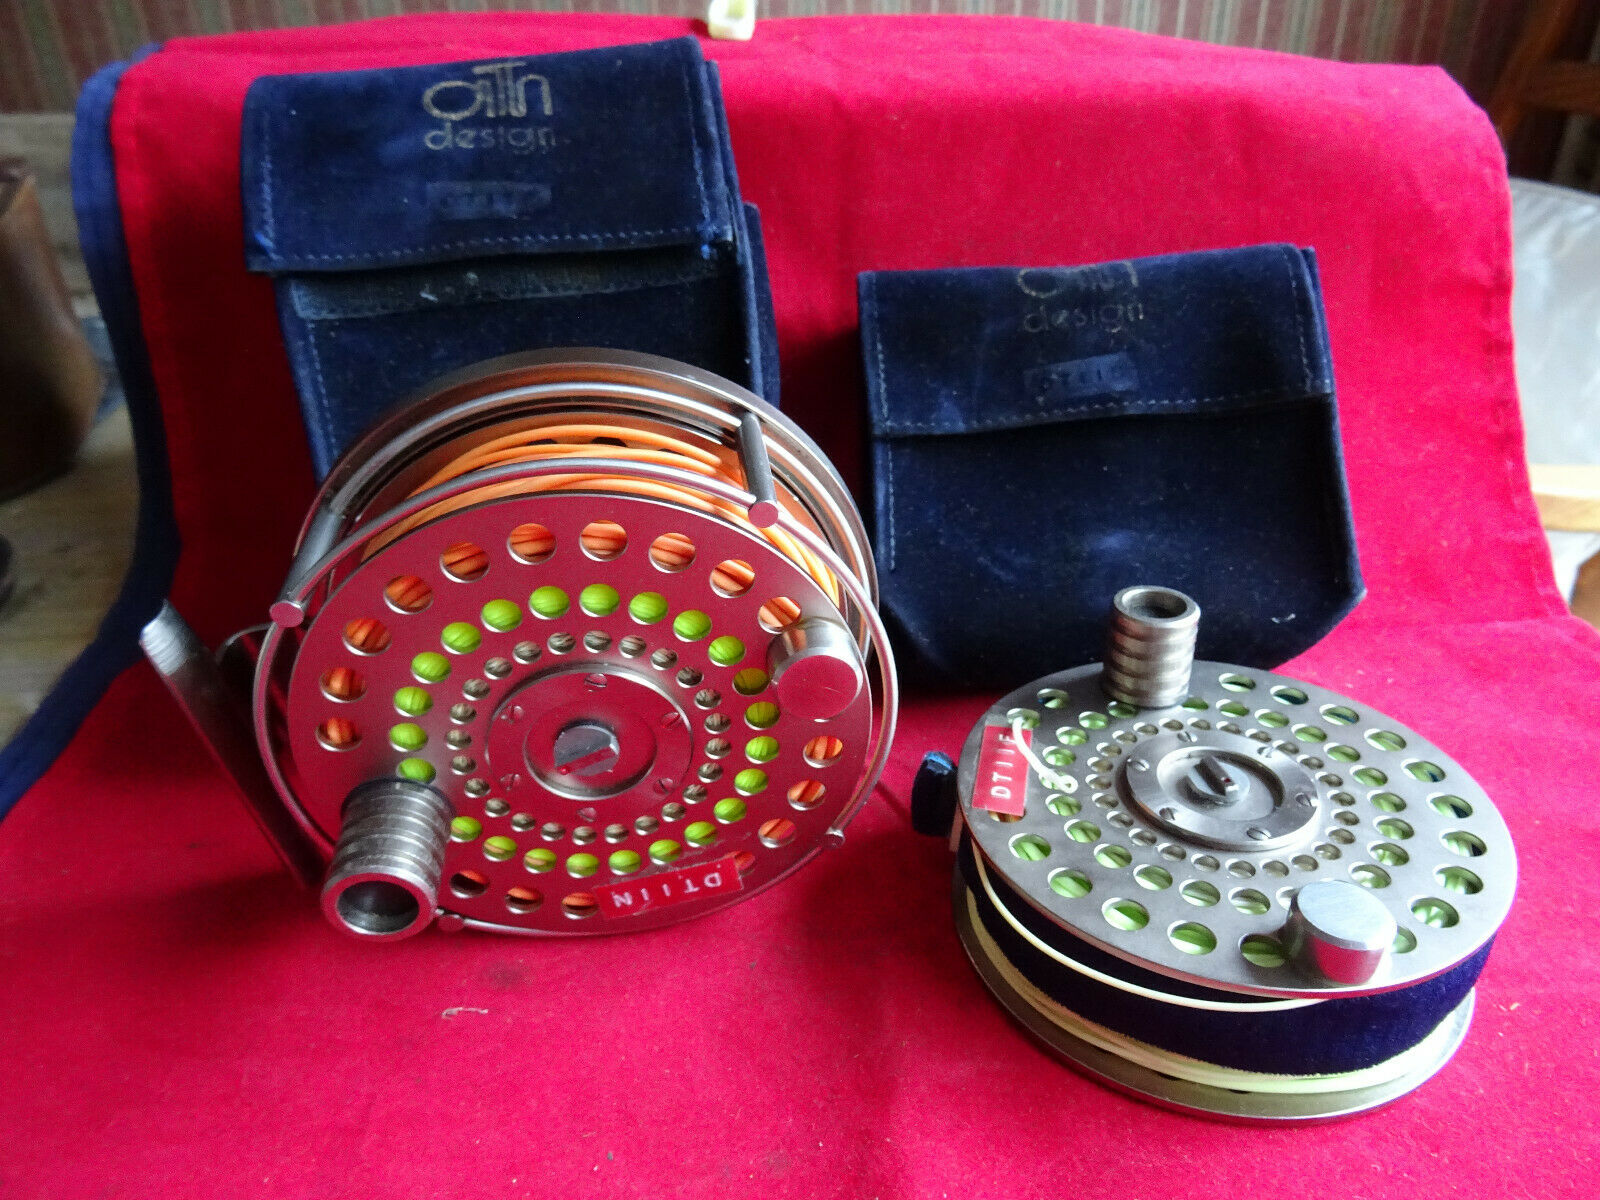 A VERY GOOD ARI T HART S3 208 SALMON FLY REEL AND SPARE SPOOL WITH CASES & LINES